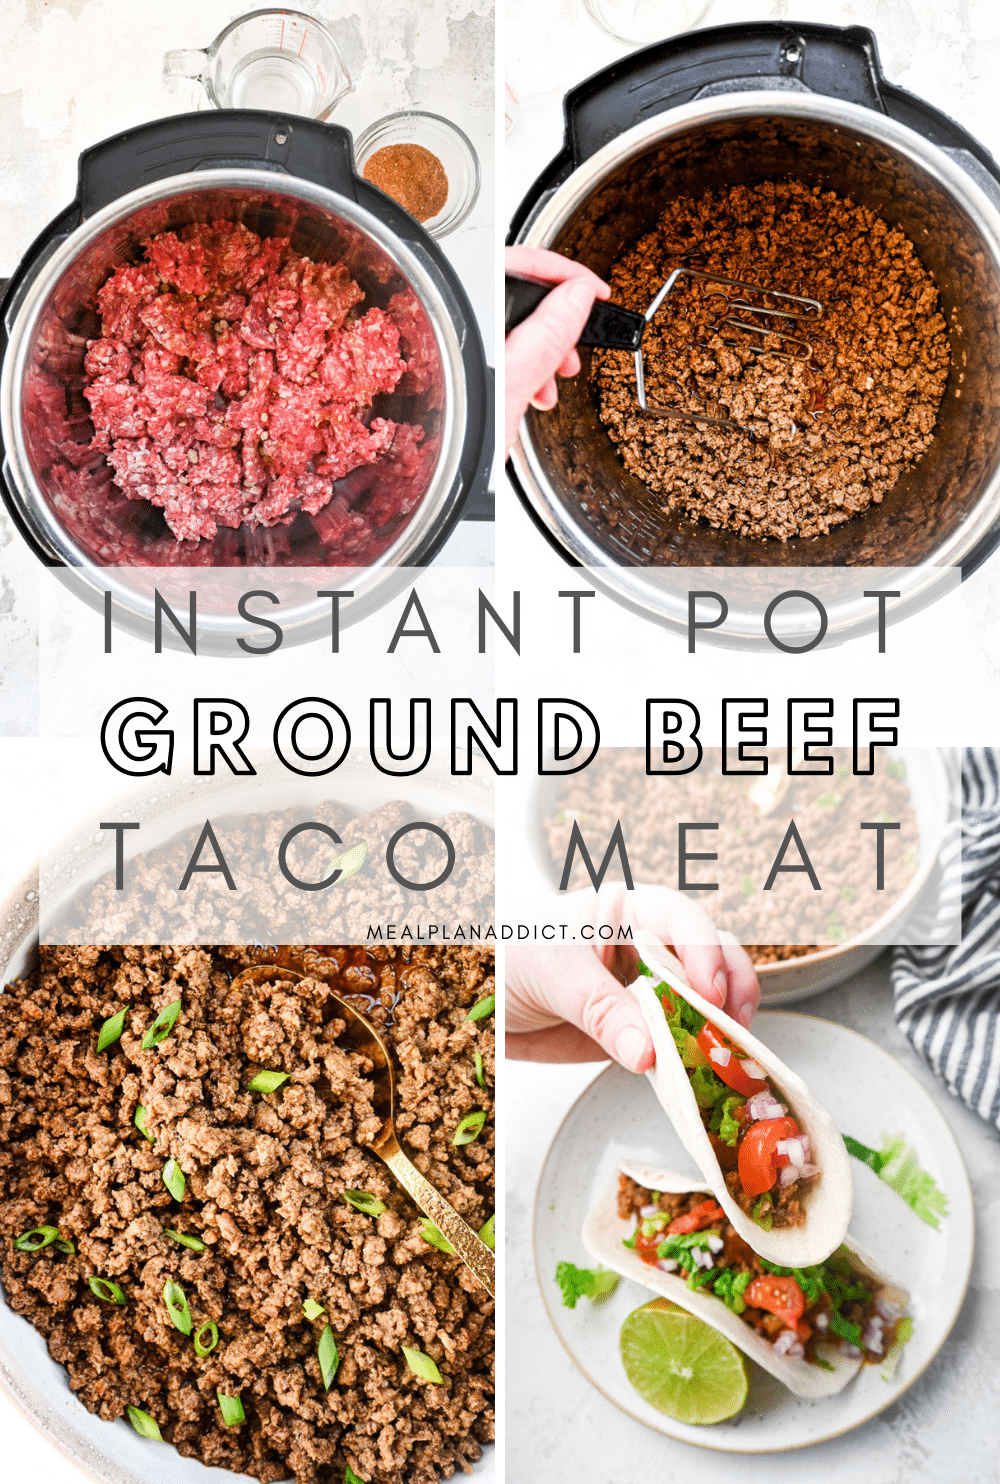 Taco Tuesday Meal Prep with this Ground Beef Taco Meat Recipe